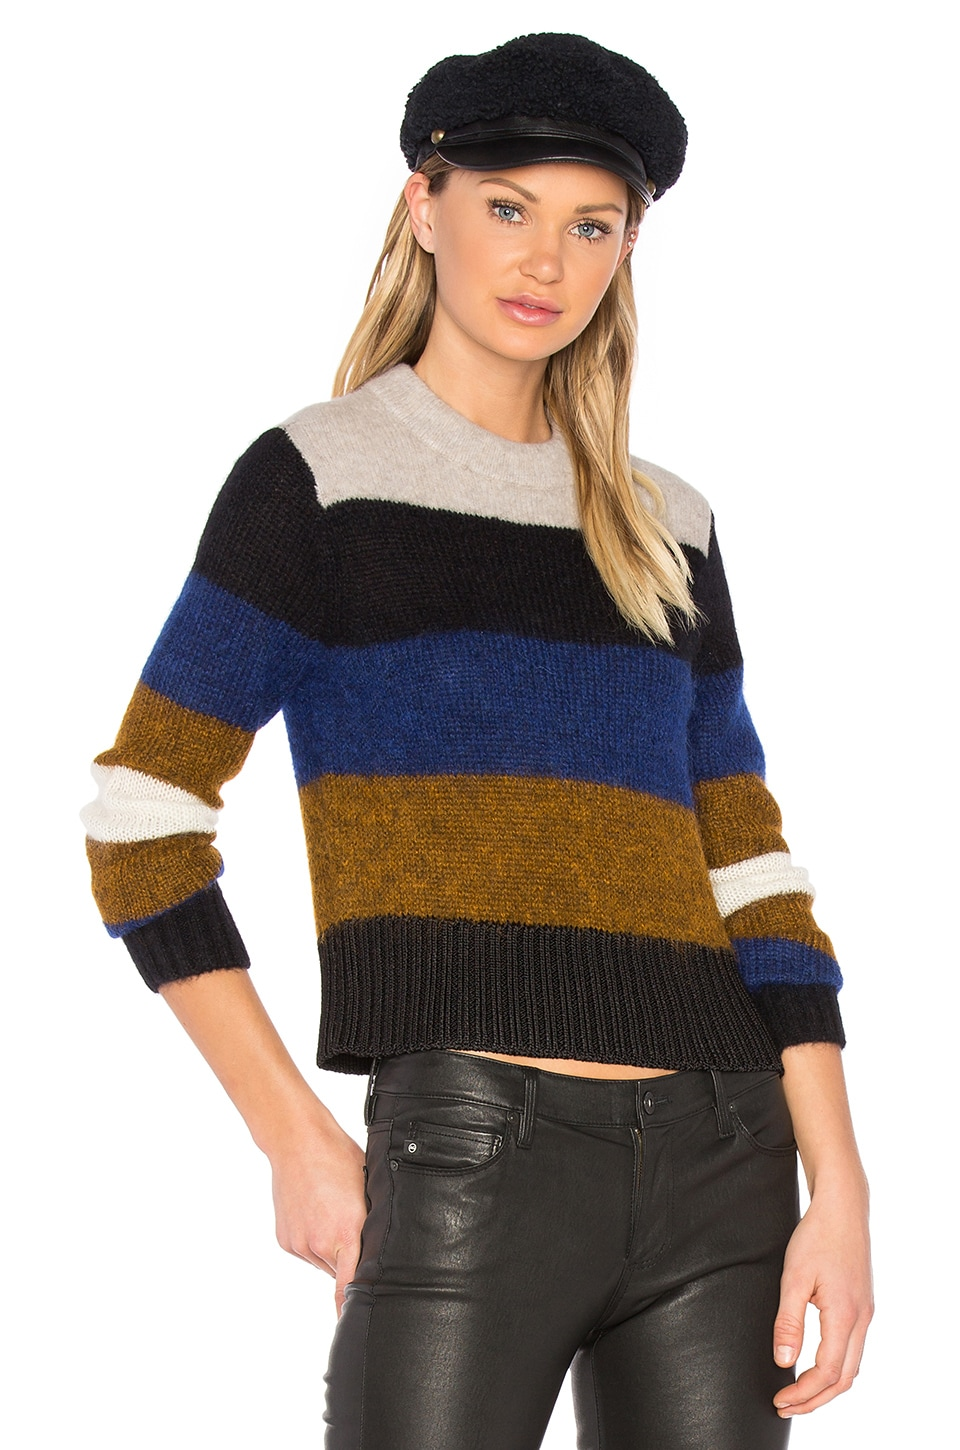 Rag & Bone Britton Sweater in Ash